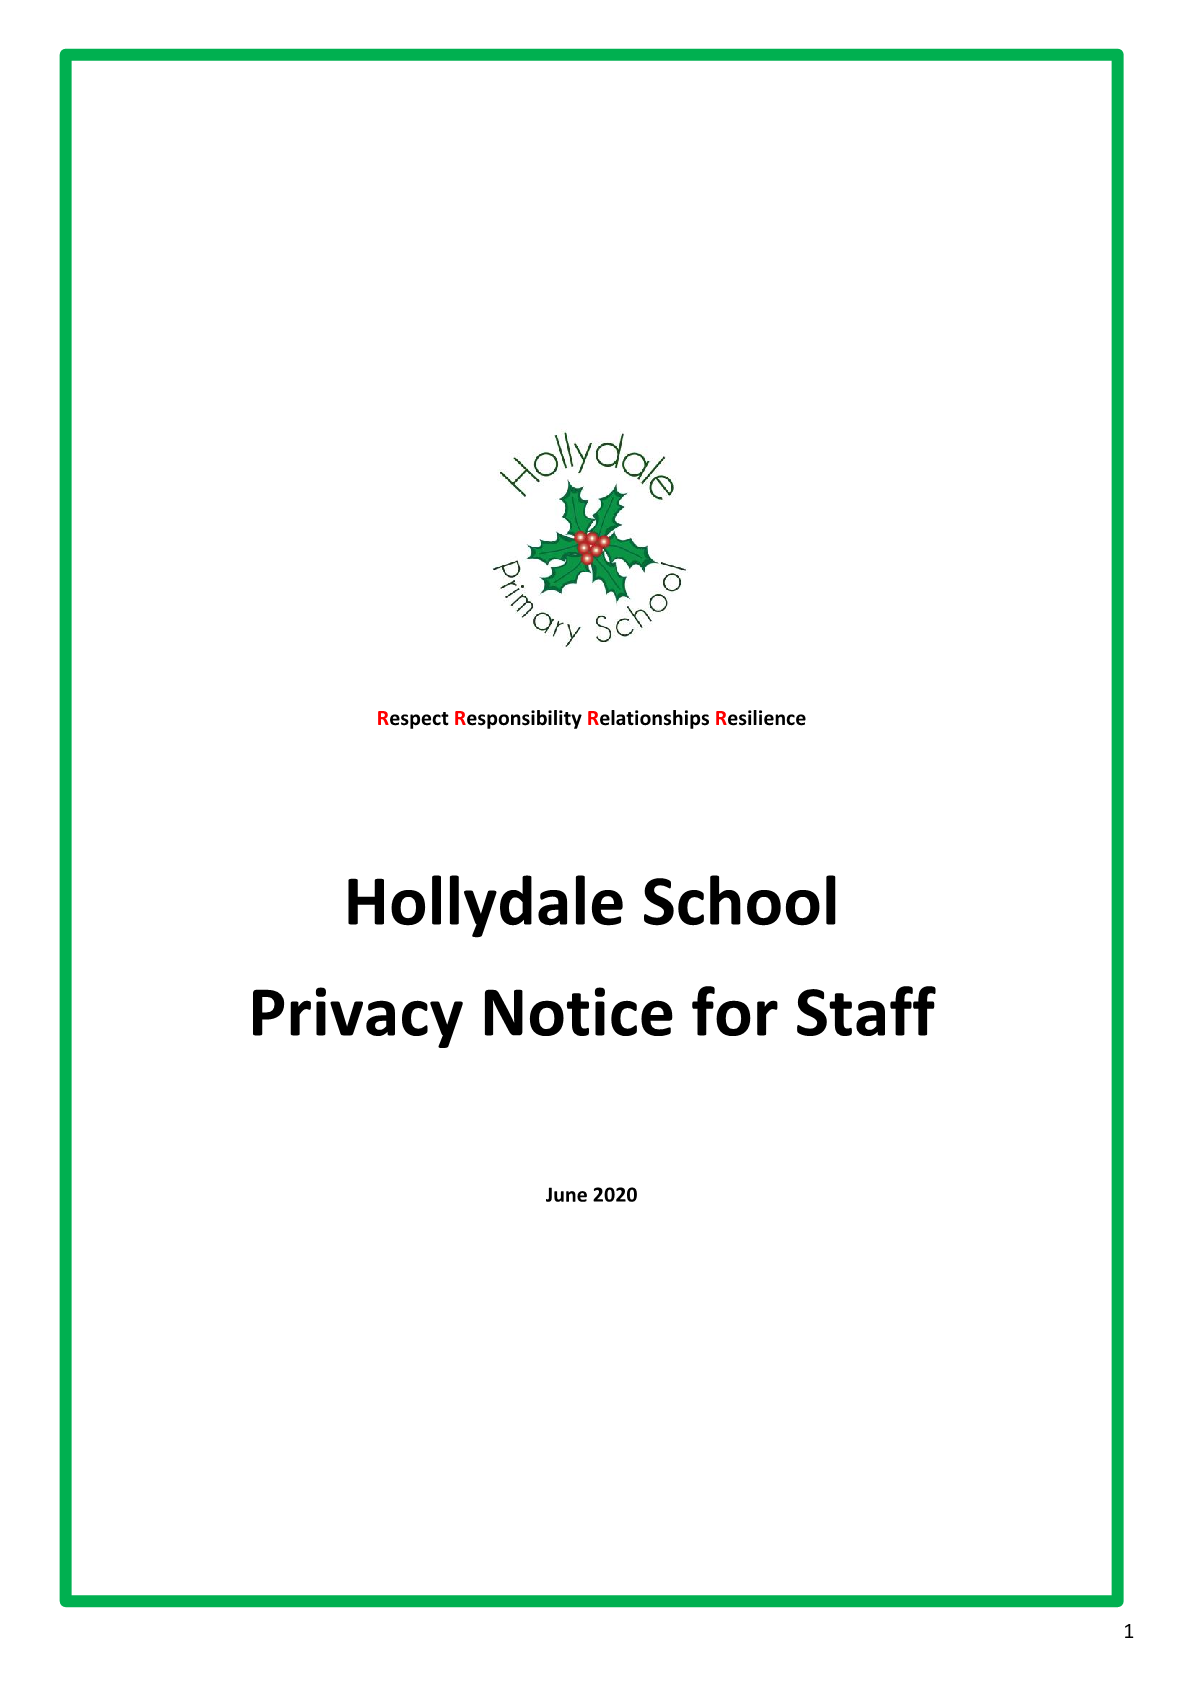 Privicy Notice for Staff